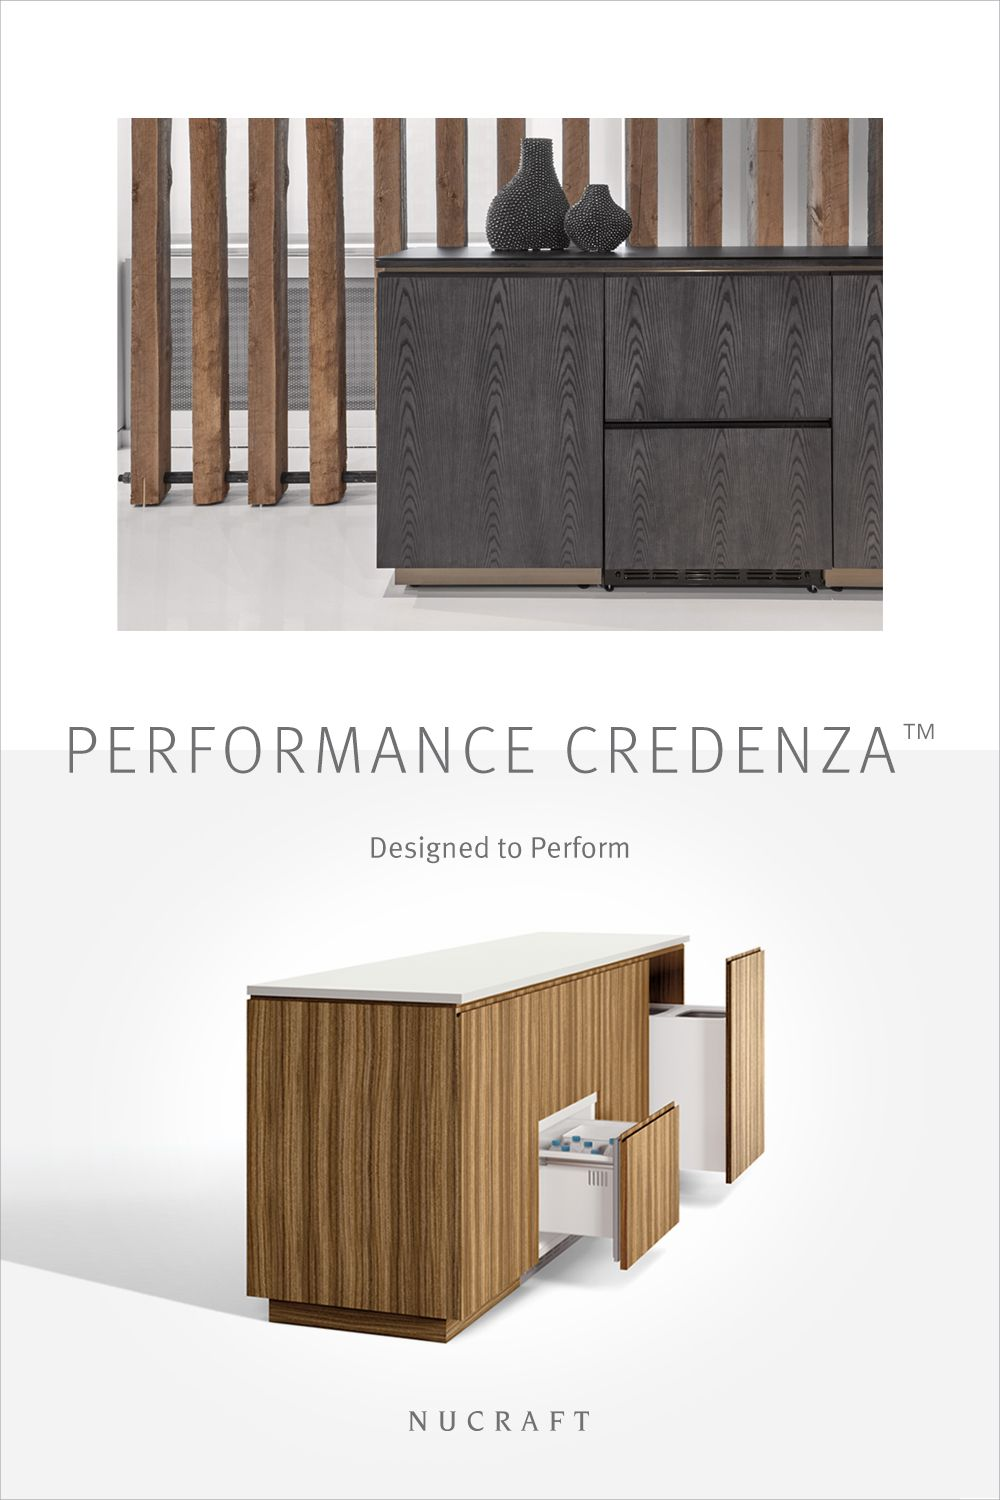 Performance Credenzas™ | Nucraft | High Quality Wood Conference Tables, Casegoods, and Credenzas | Nucraft | High Quality Conference Tables, Casegoods and Credenzas